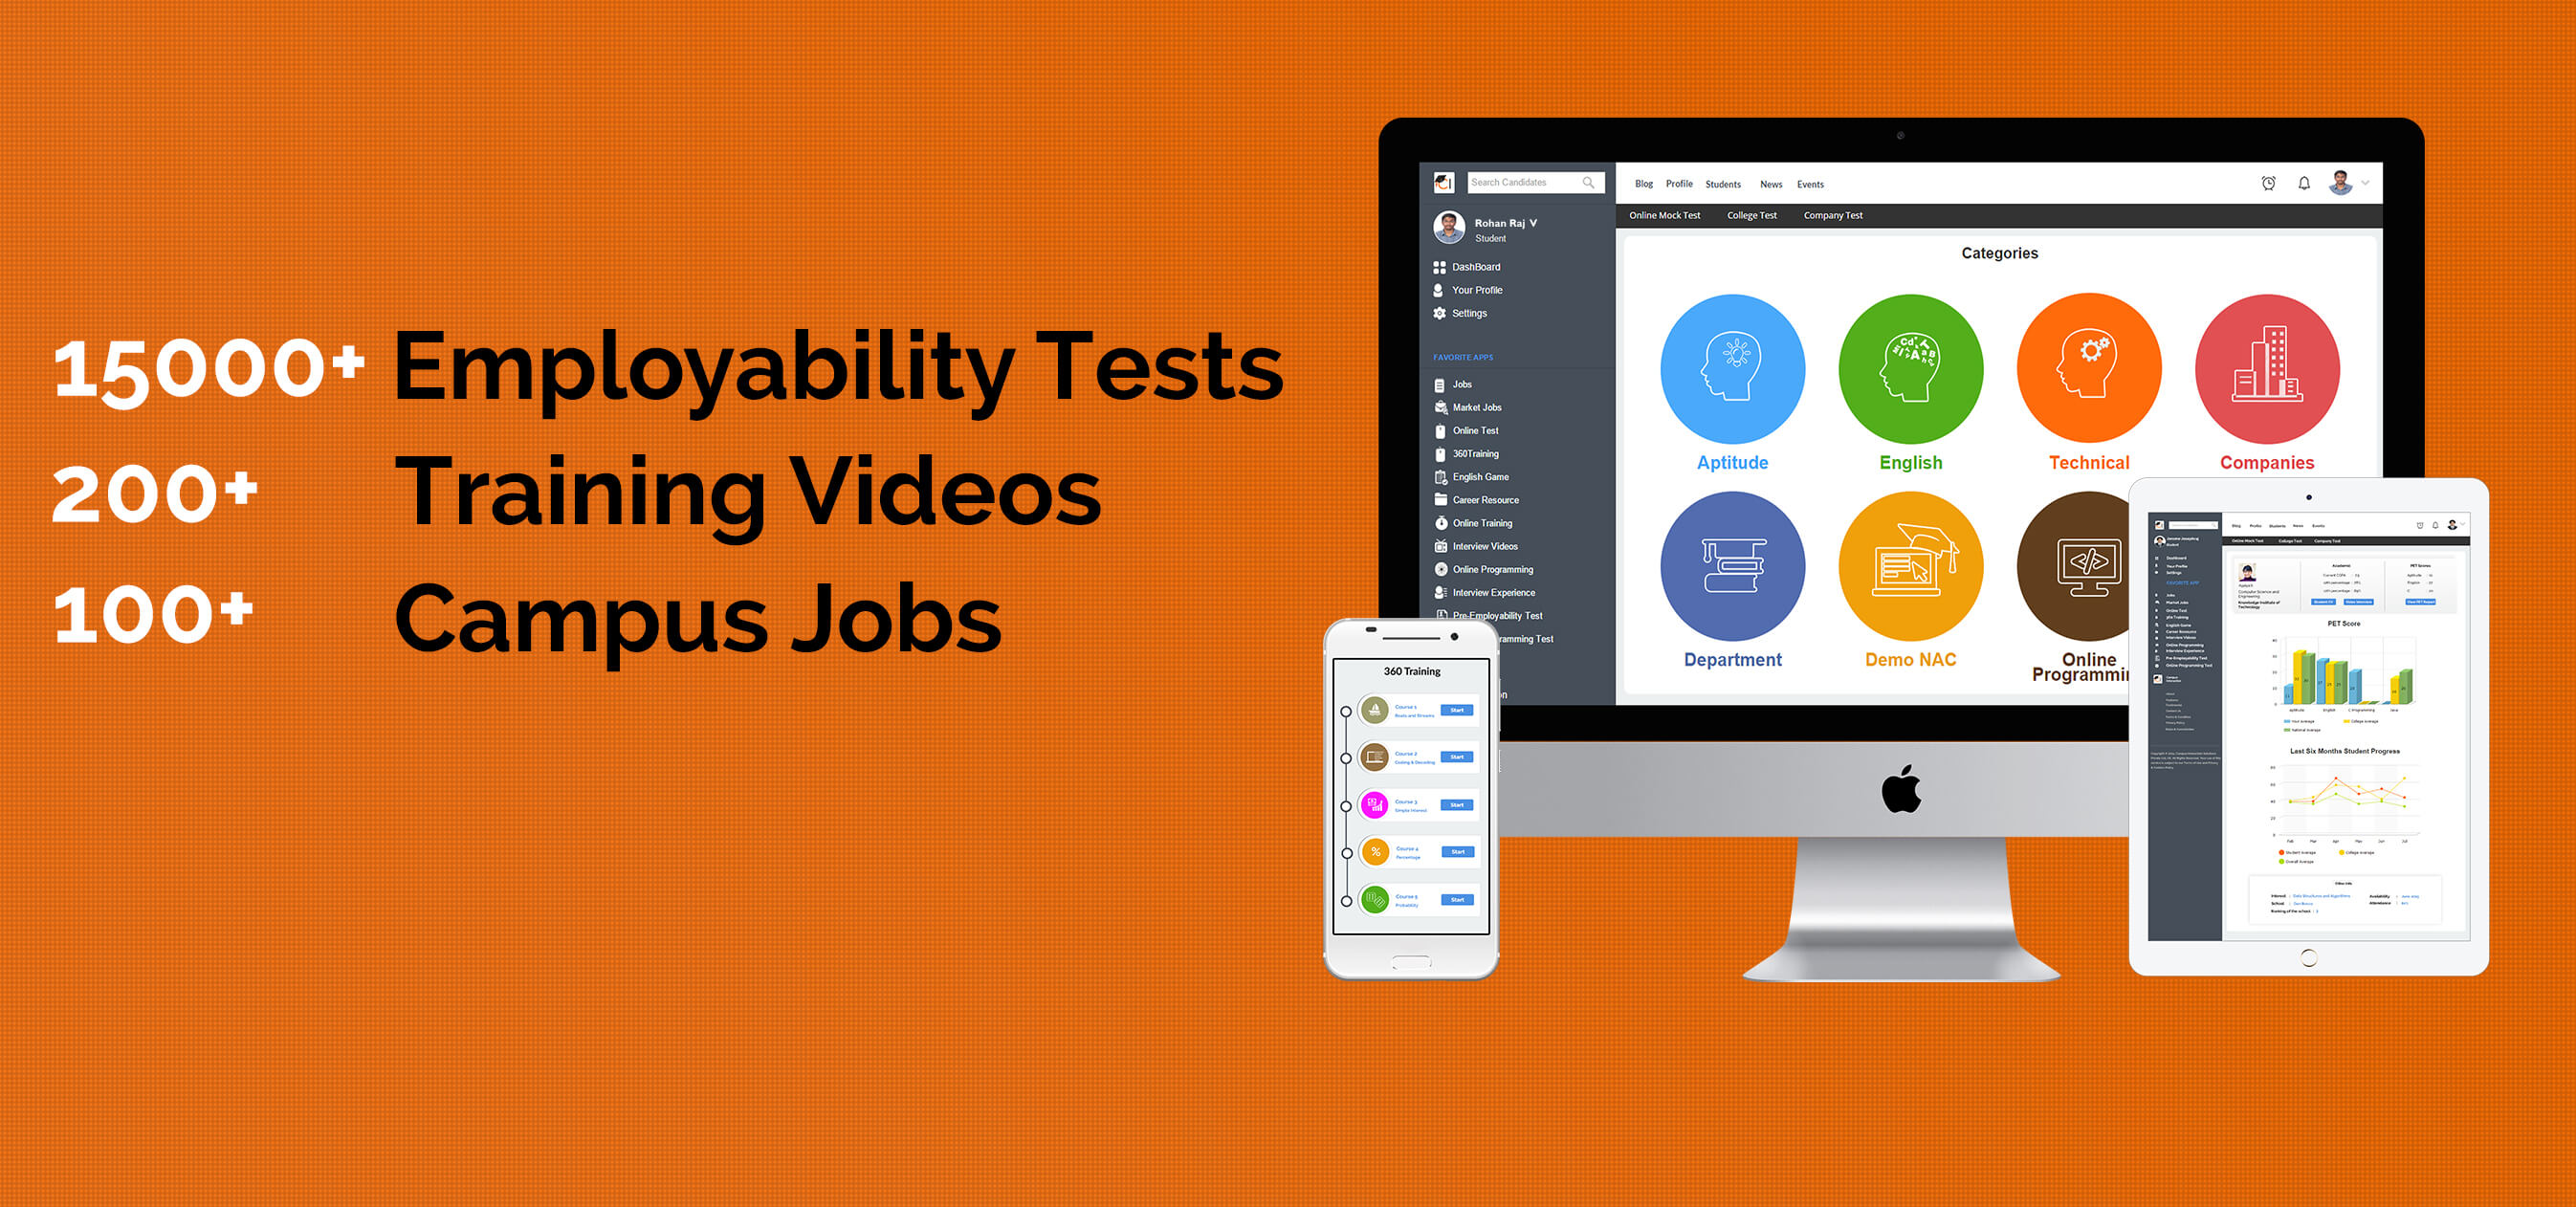 15000+ Employability Tests, 200+ Training Videos, 100+ Campus Jobs